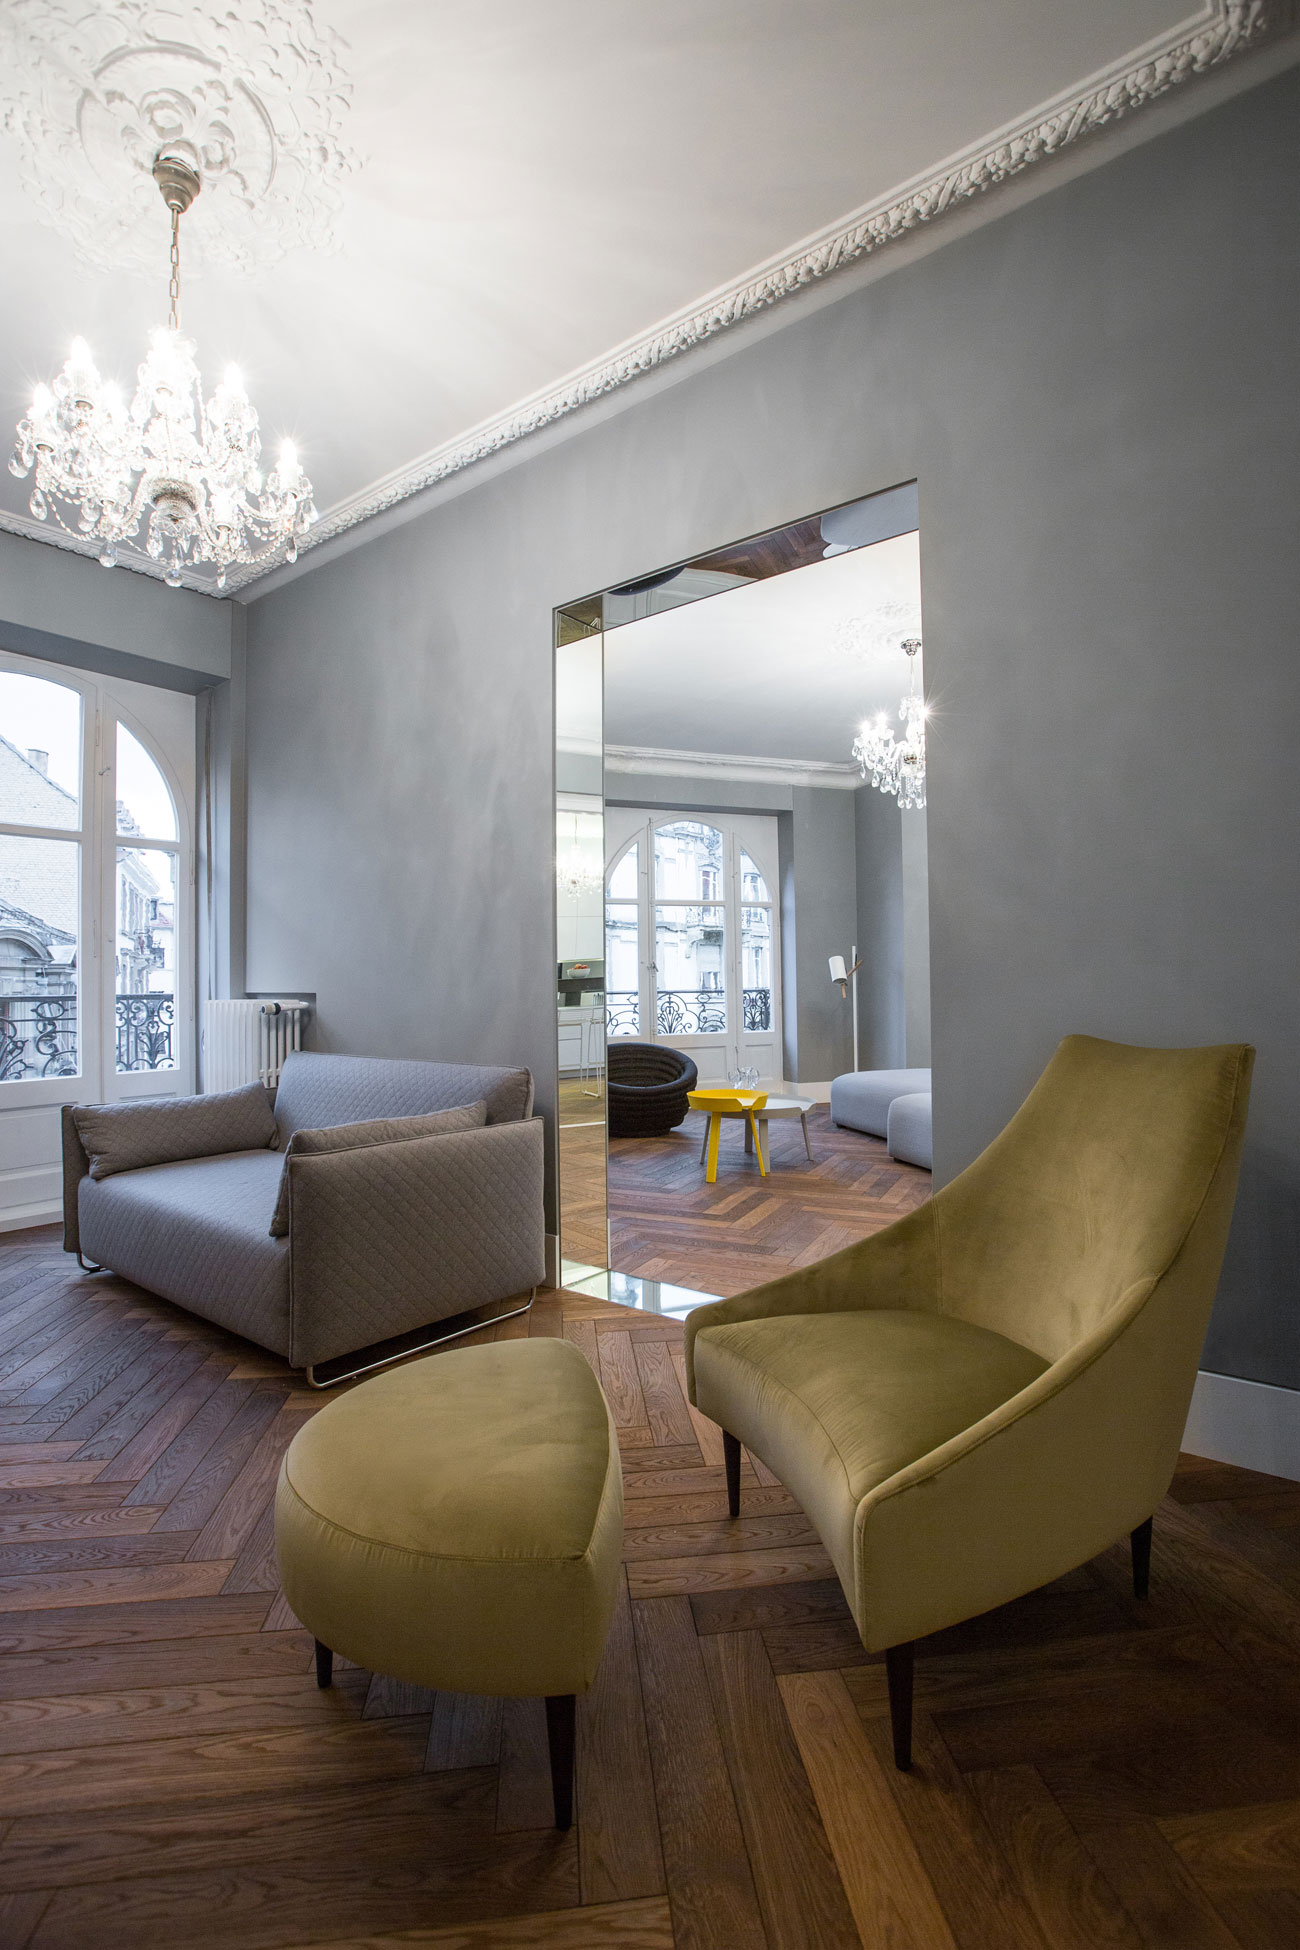 colorful furniture added to apartment in strasbourg by ycl studio 13 Colorful Furniture Added To Apartment In Strasbourg By YCL Studio